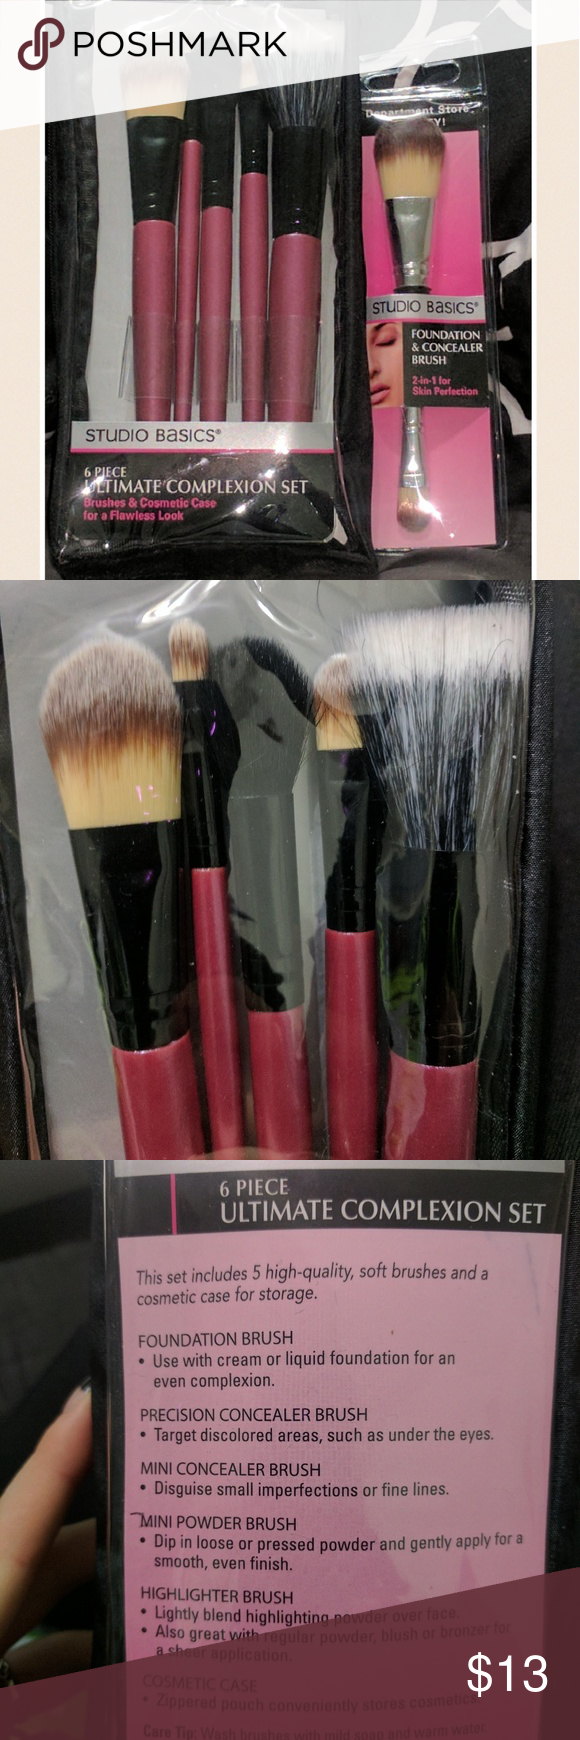 Set of Studio Basics Make Up Brushes Brand new 6 pack and foundation and concealer brush, brand new never opened Makeup Brushes & Tools